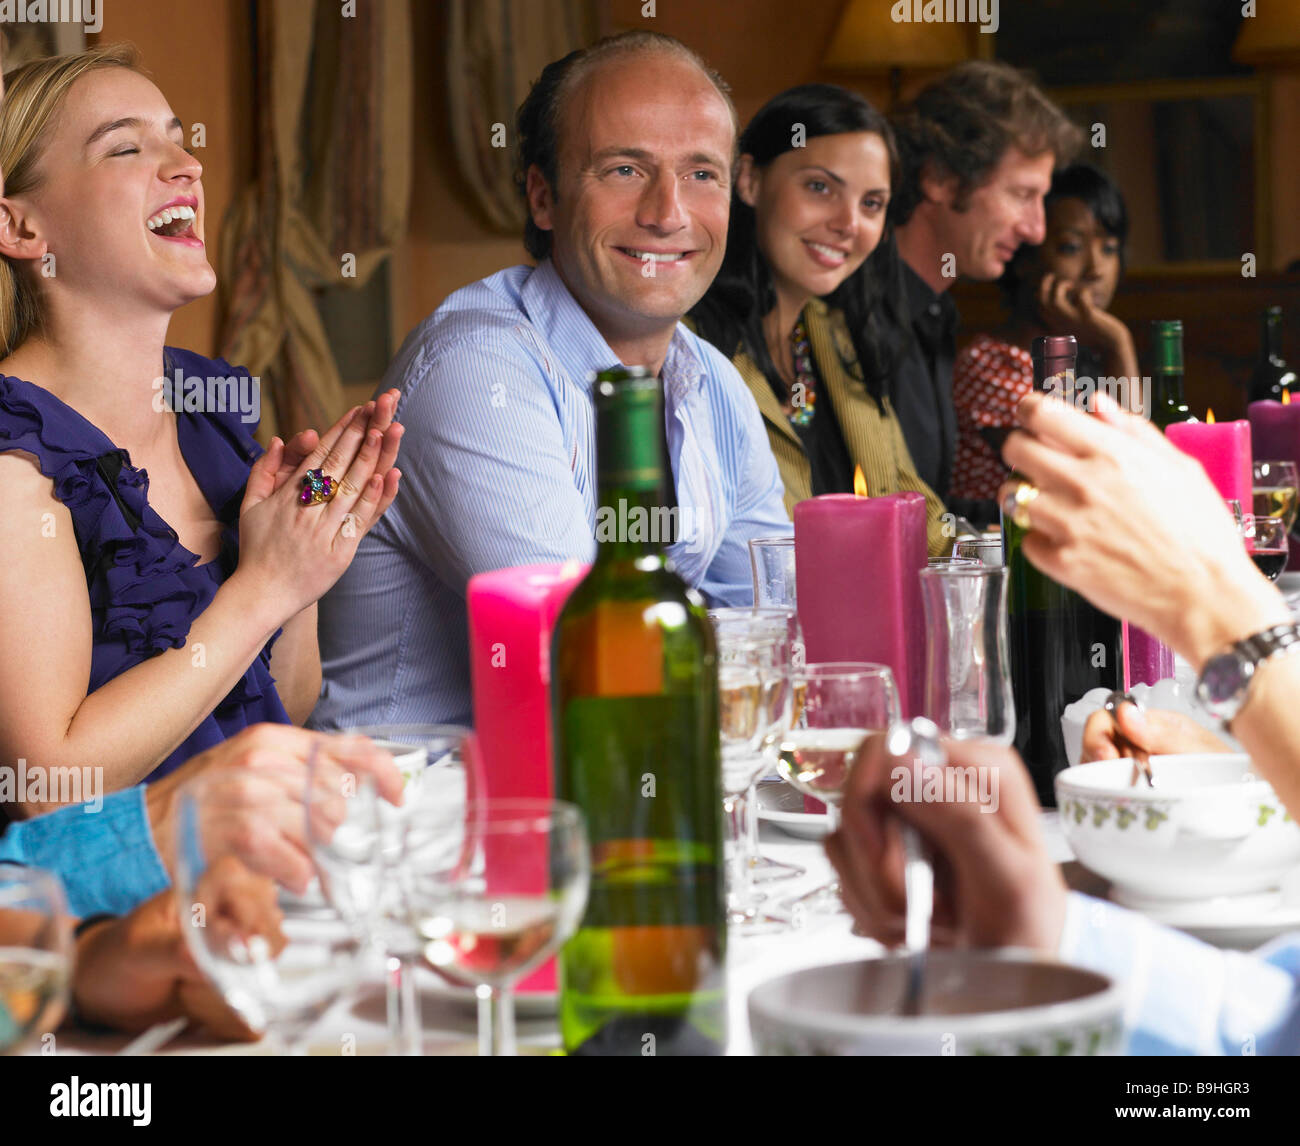 People Laughing At Dinner Table Stock Photo 23128647 Alamy